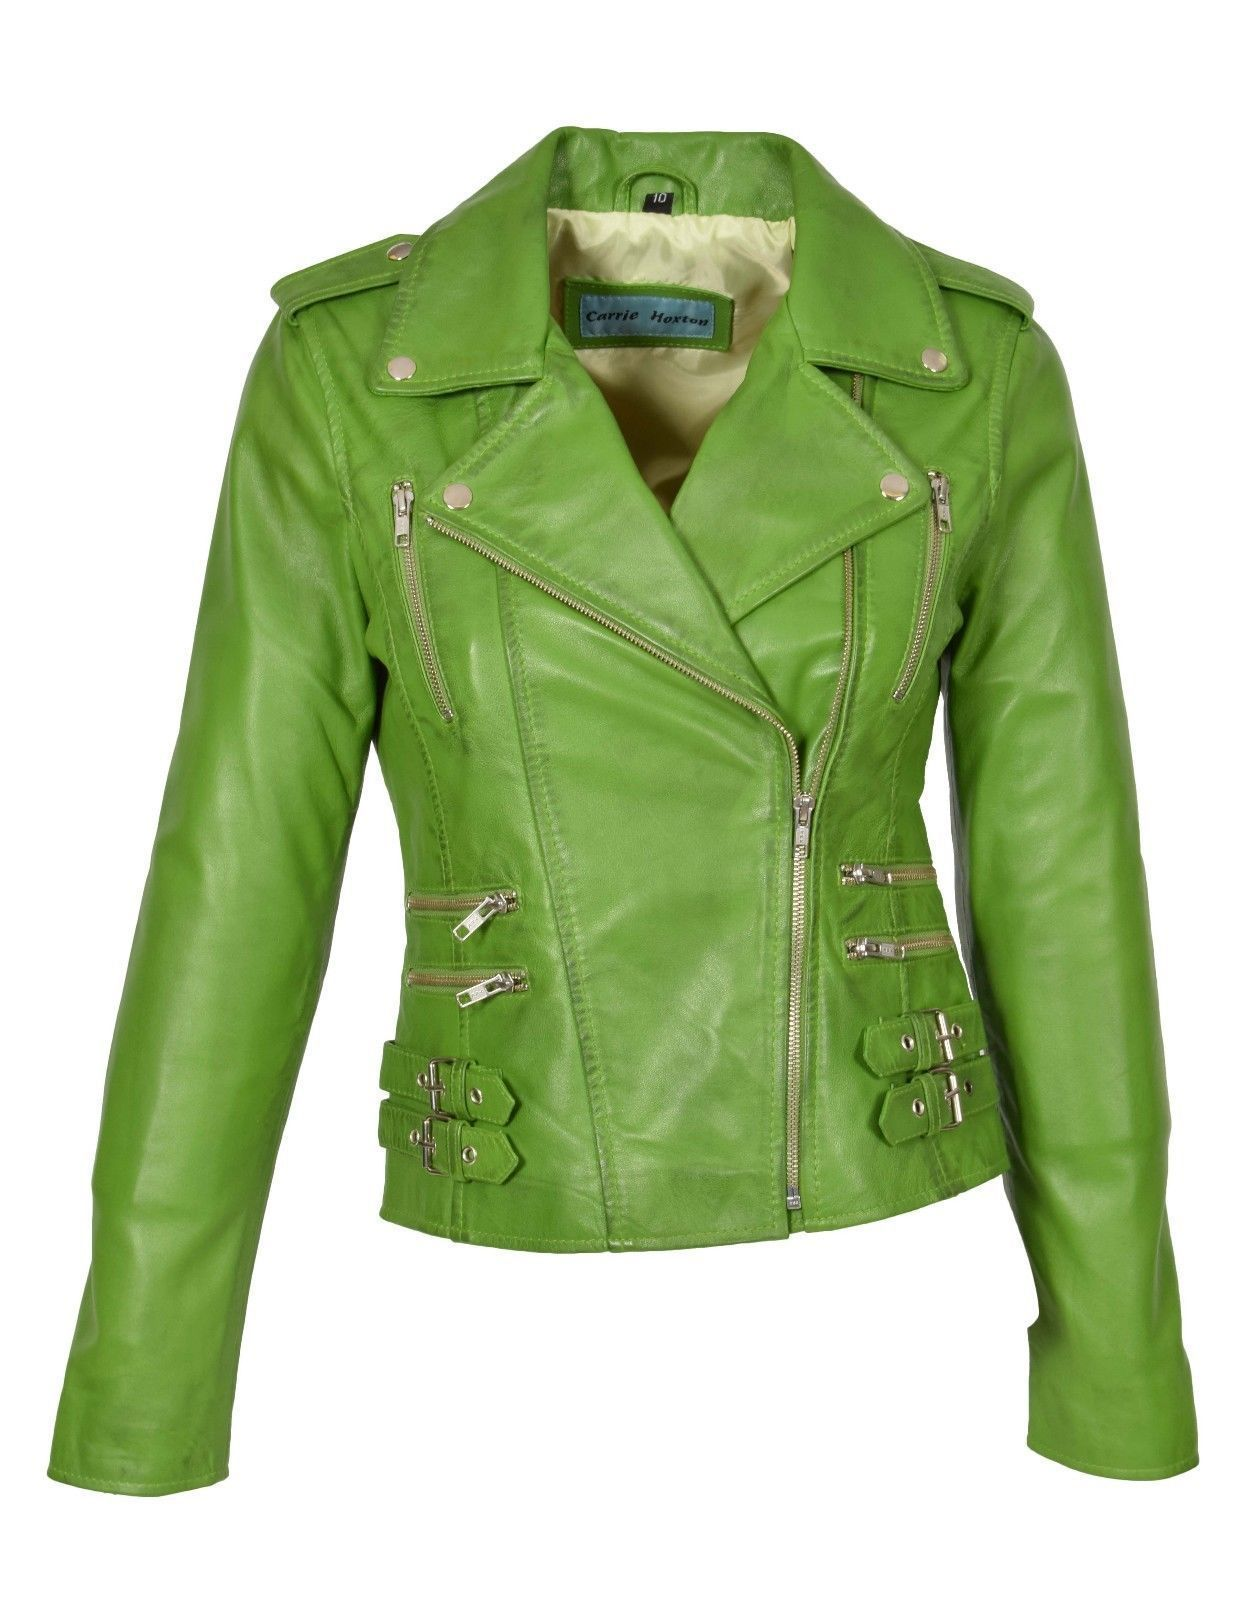 Pin by Brian B on Fashion Green leather jackets, Leather